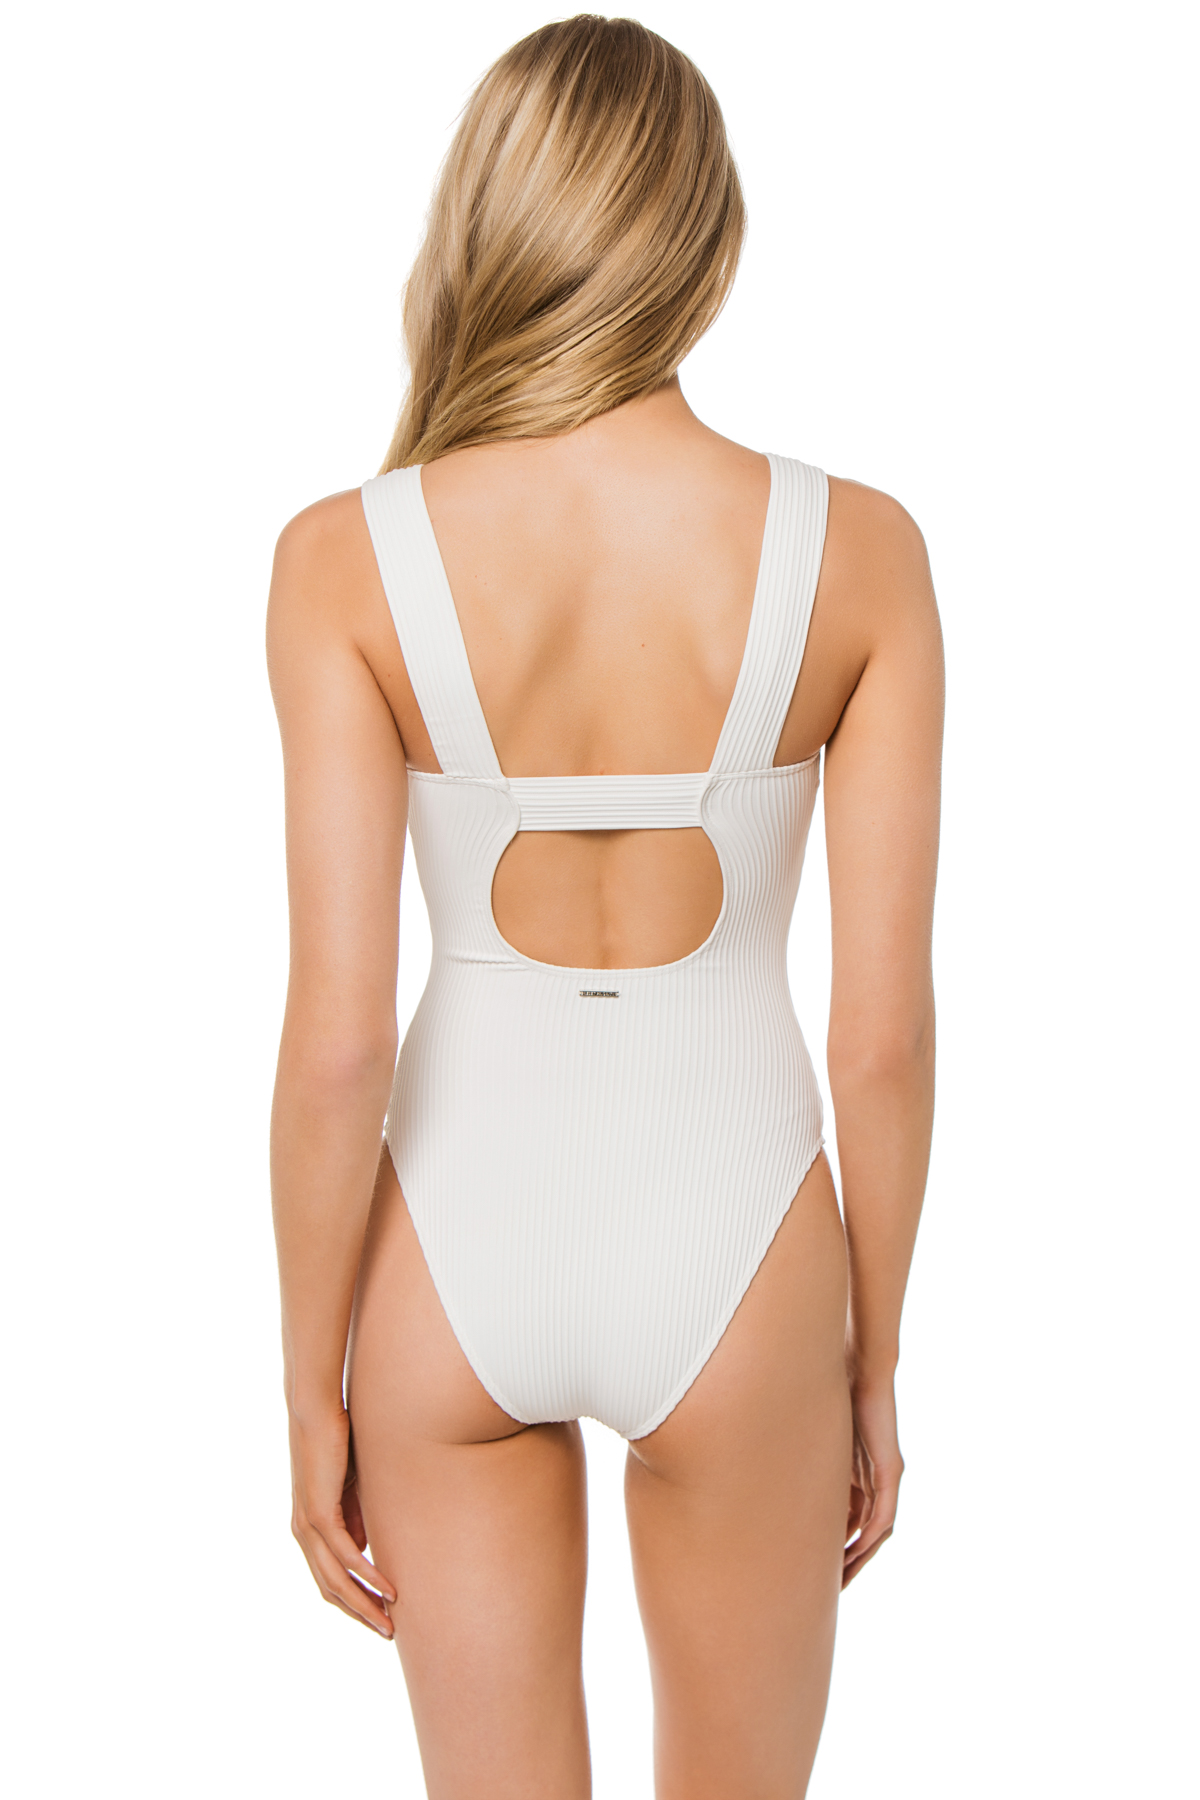 Amalfi Over The Shoulder One Piece Swimsuit - Pure 2